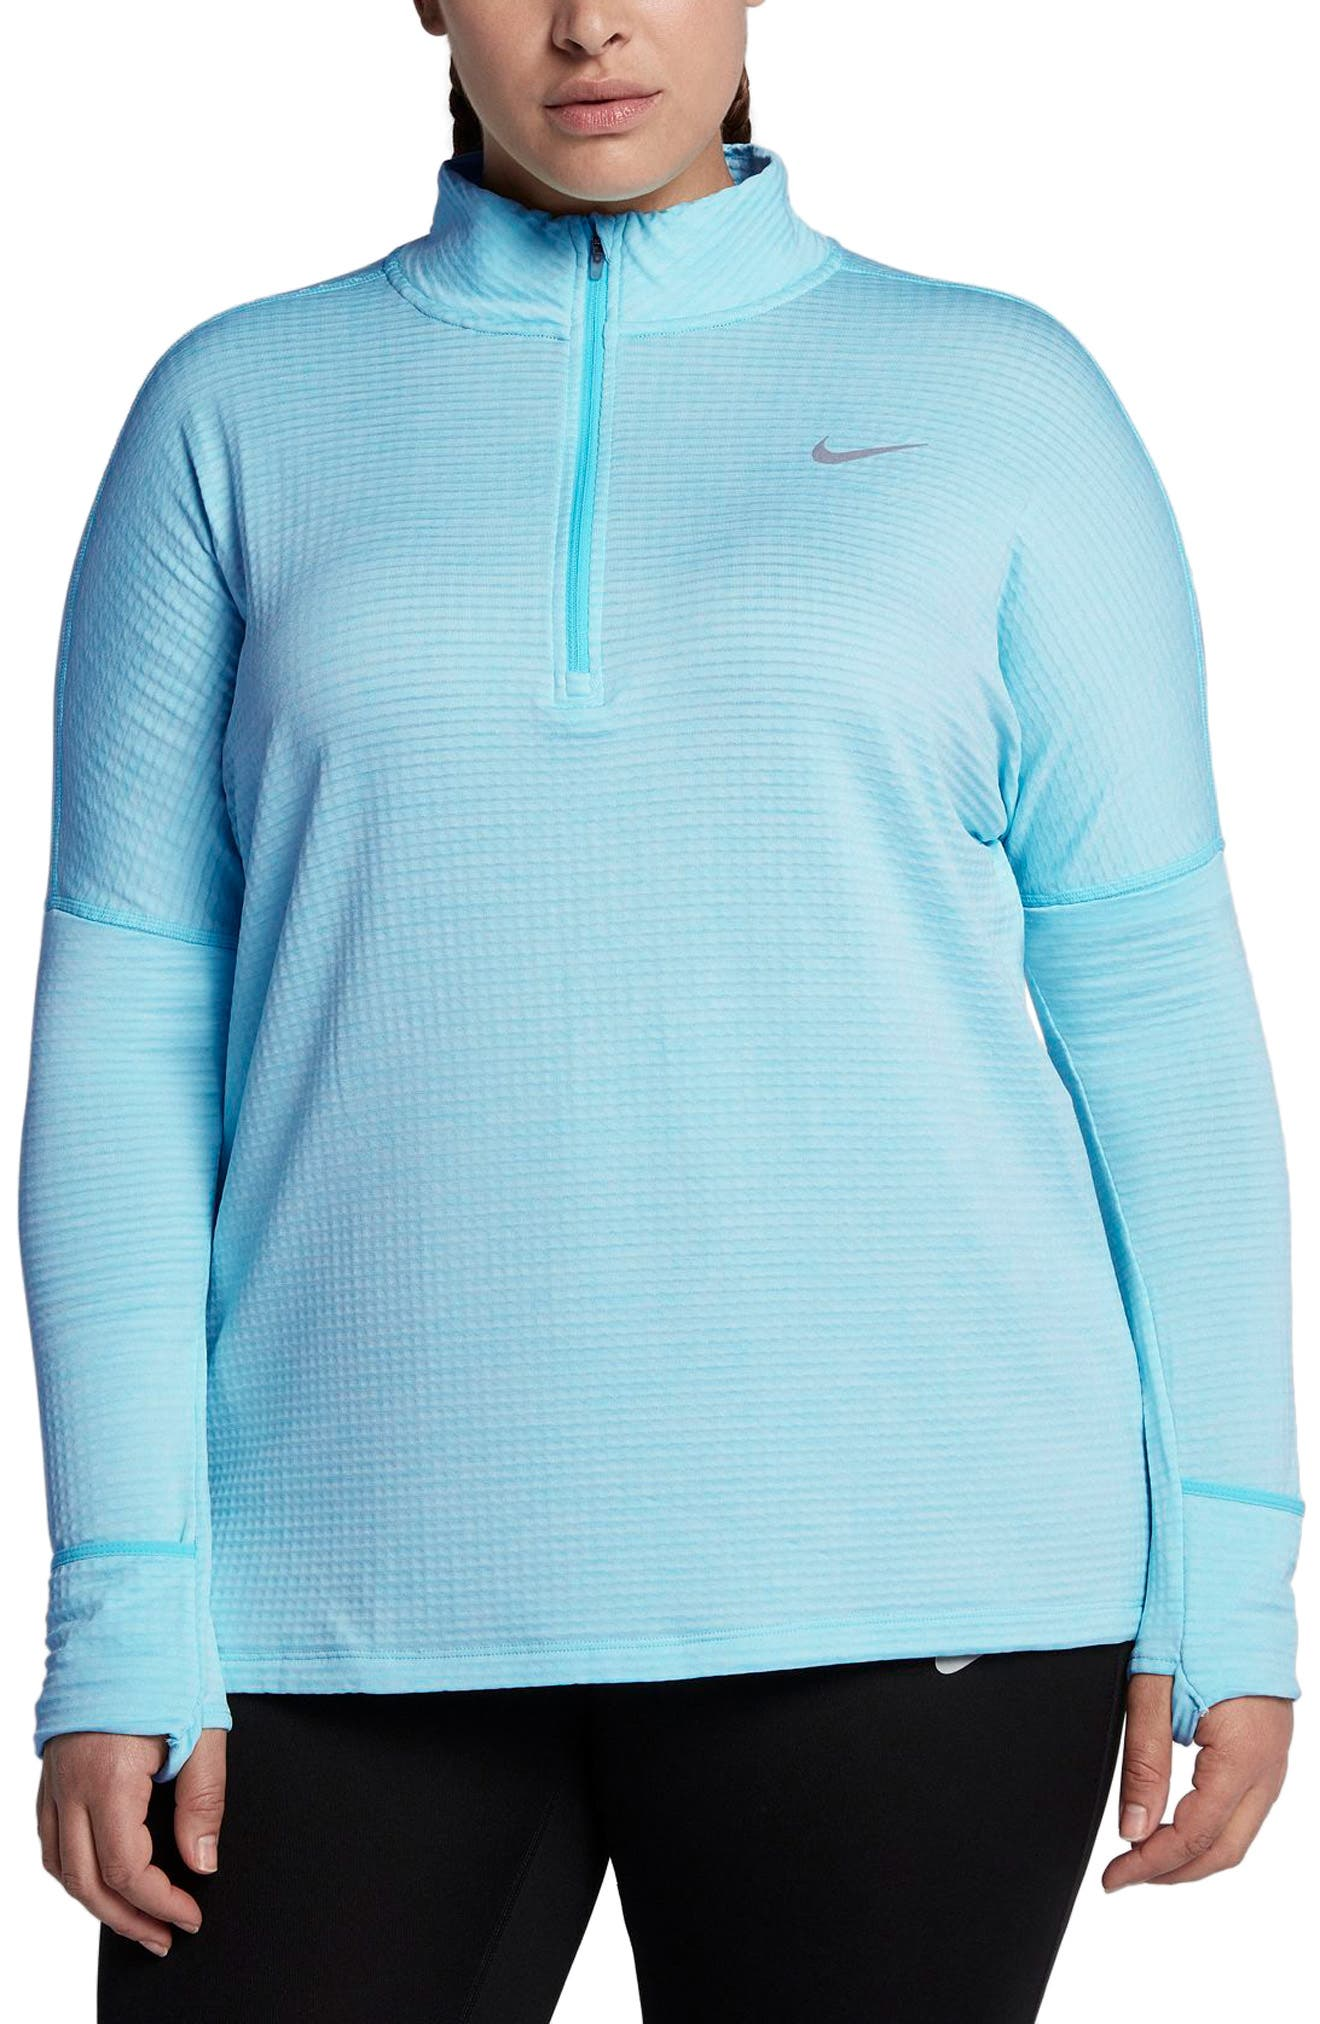 Sphere Element Long Sleeve Running Top,                             Main thumbnail 1, color,                             Polarized Blue/ Htr